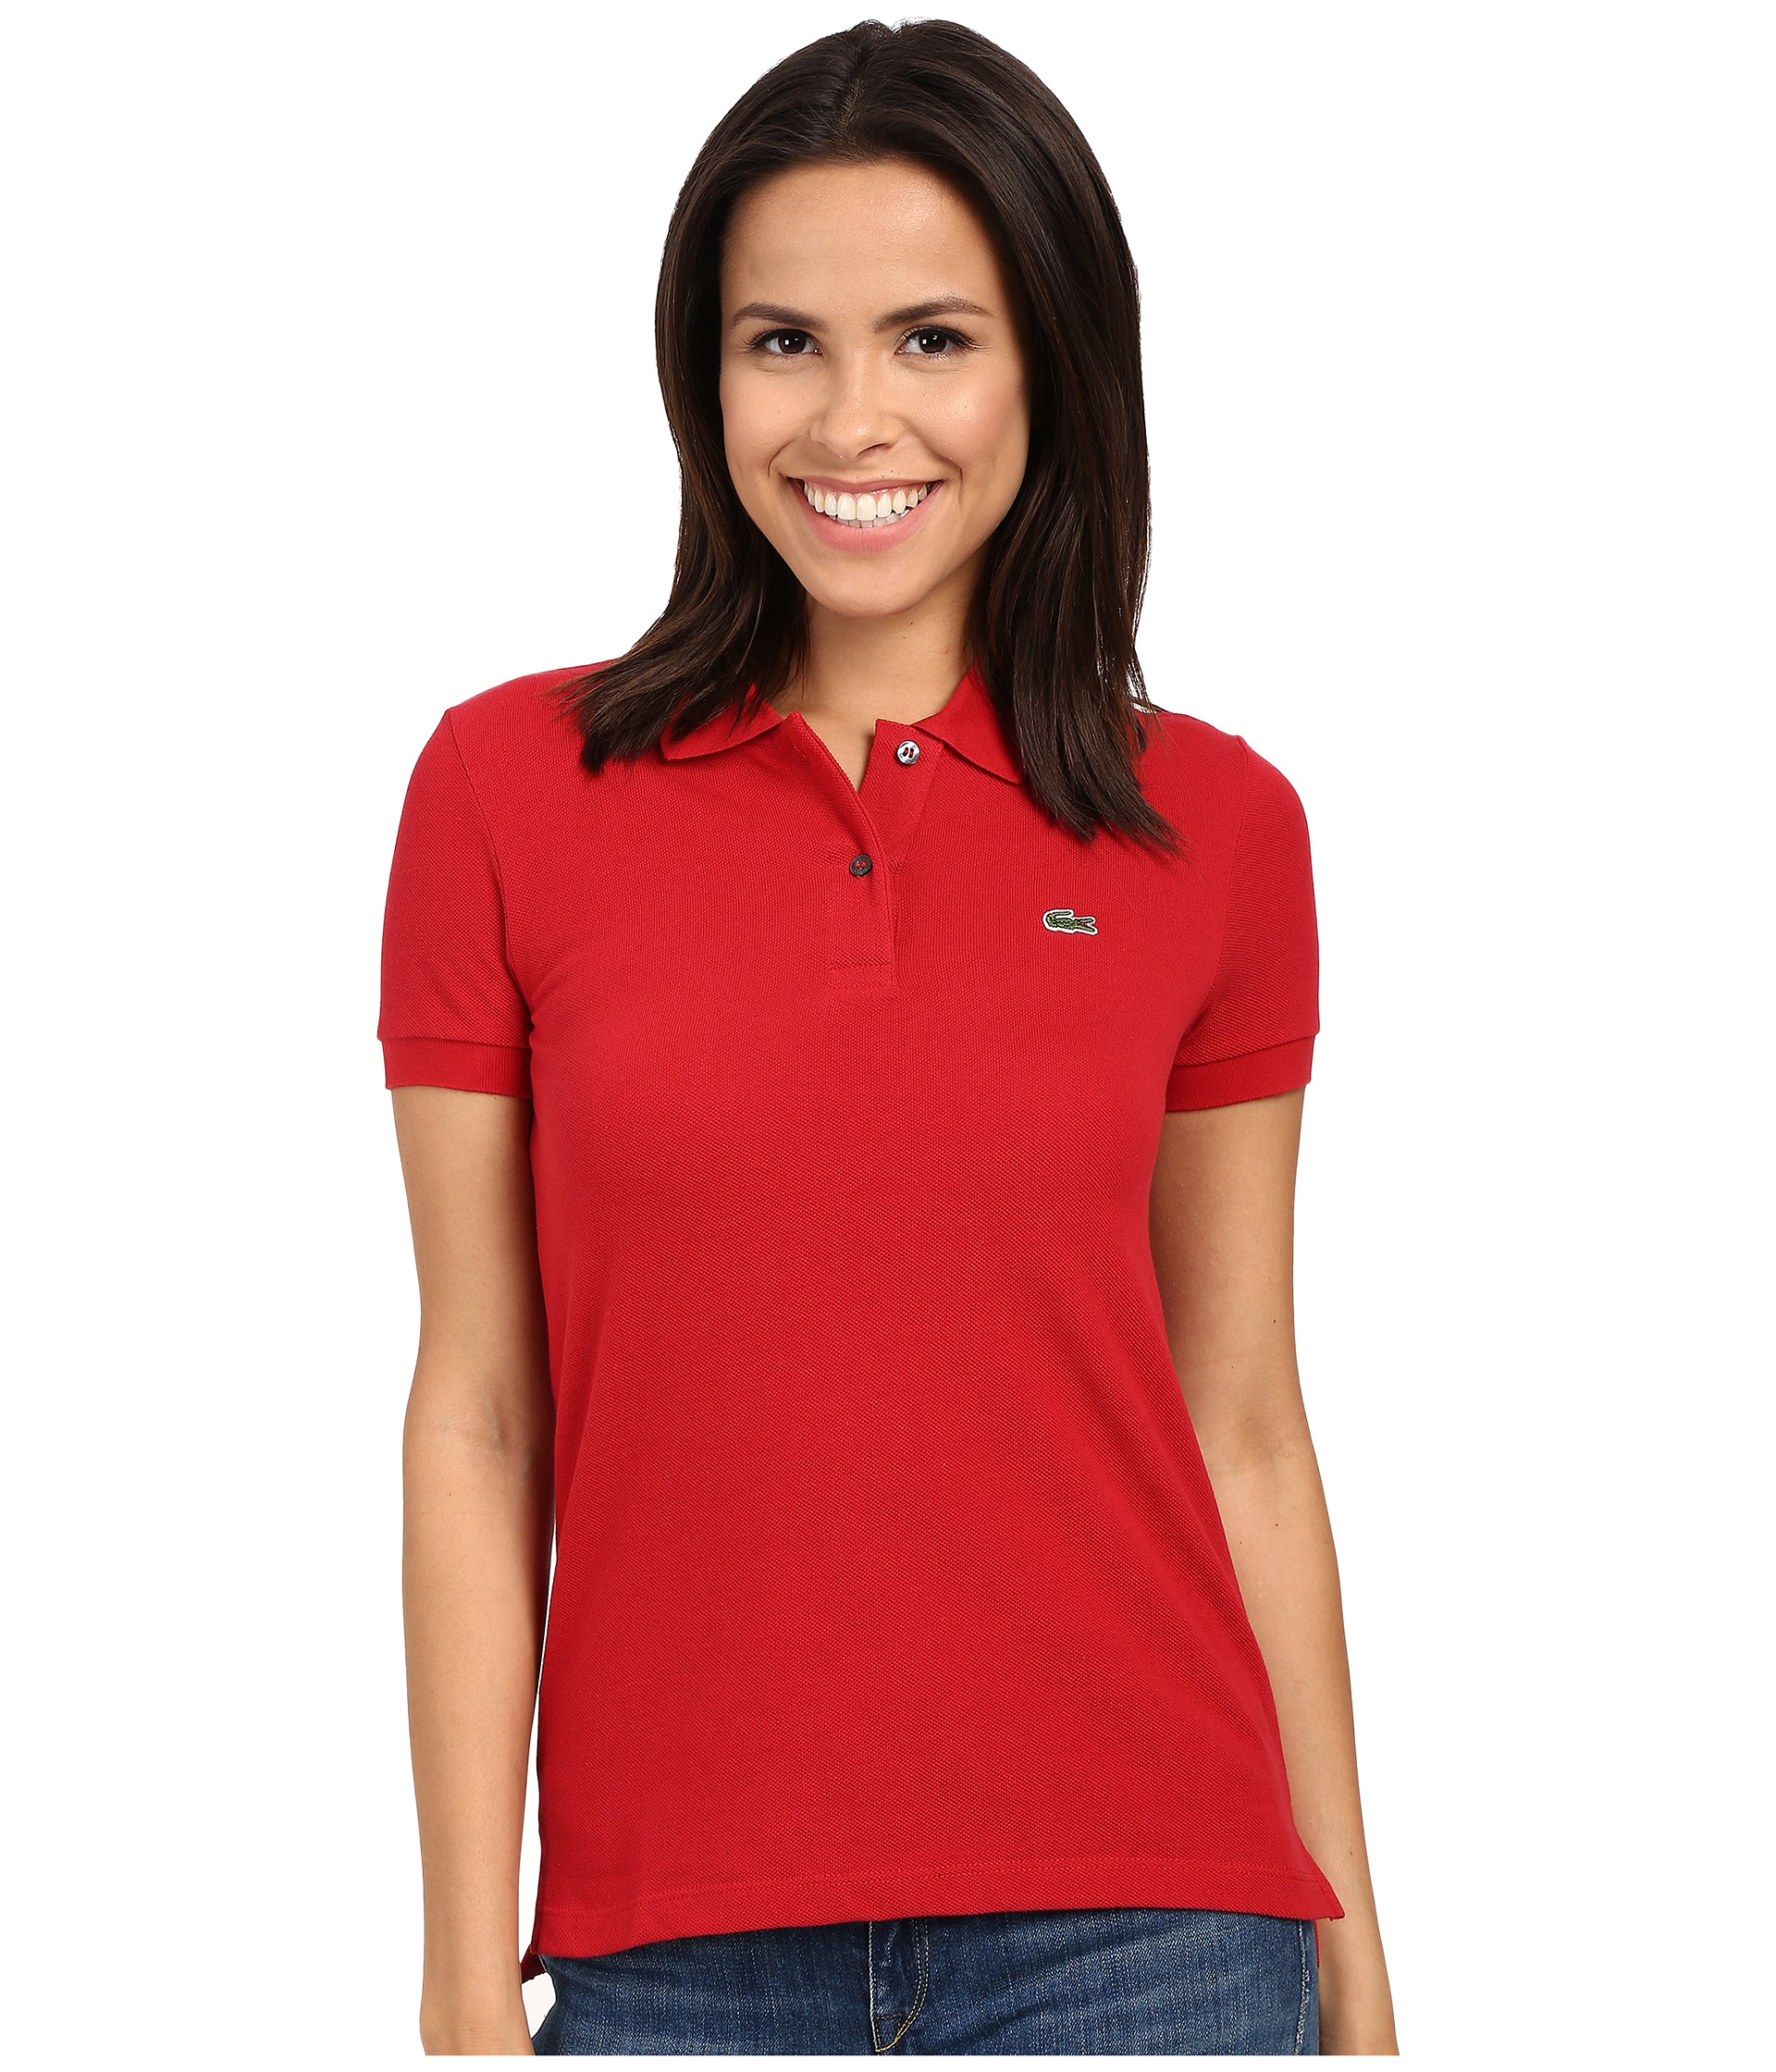 lacoste short sleeve classic fit pique polo shirt in red lyst. Black Bedroom Furniture Sets. Home Design Ideas